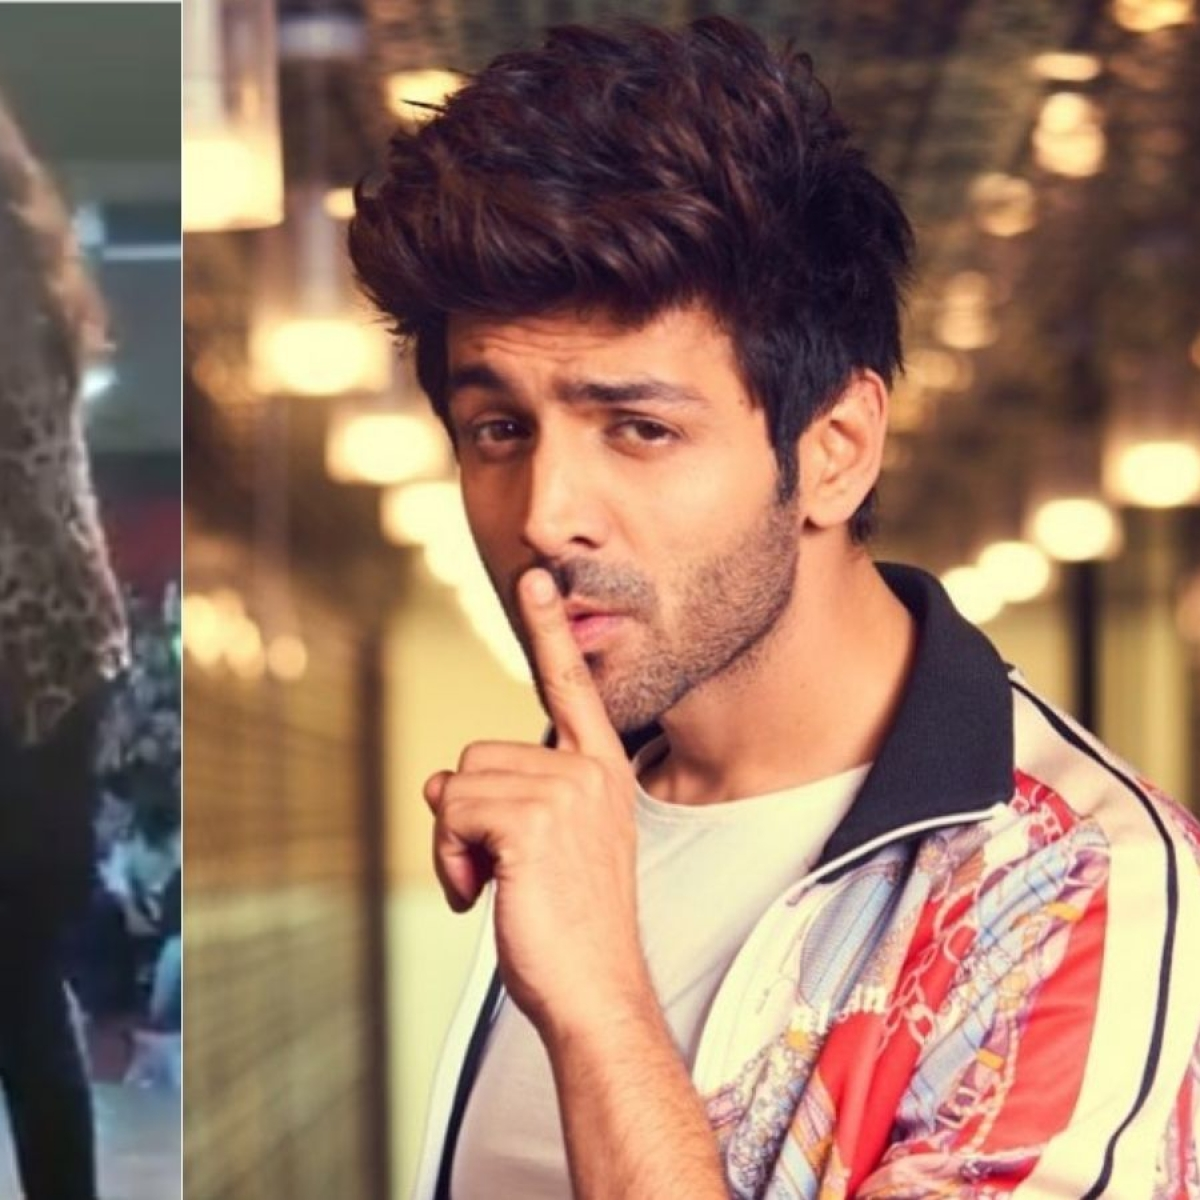 Kartik Aaryan goes down on his knees for a female fan during film promotion, watch throwback video